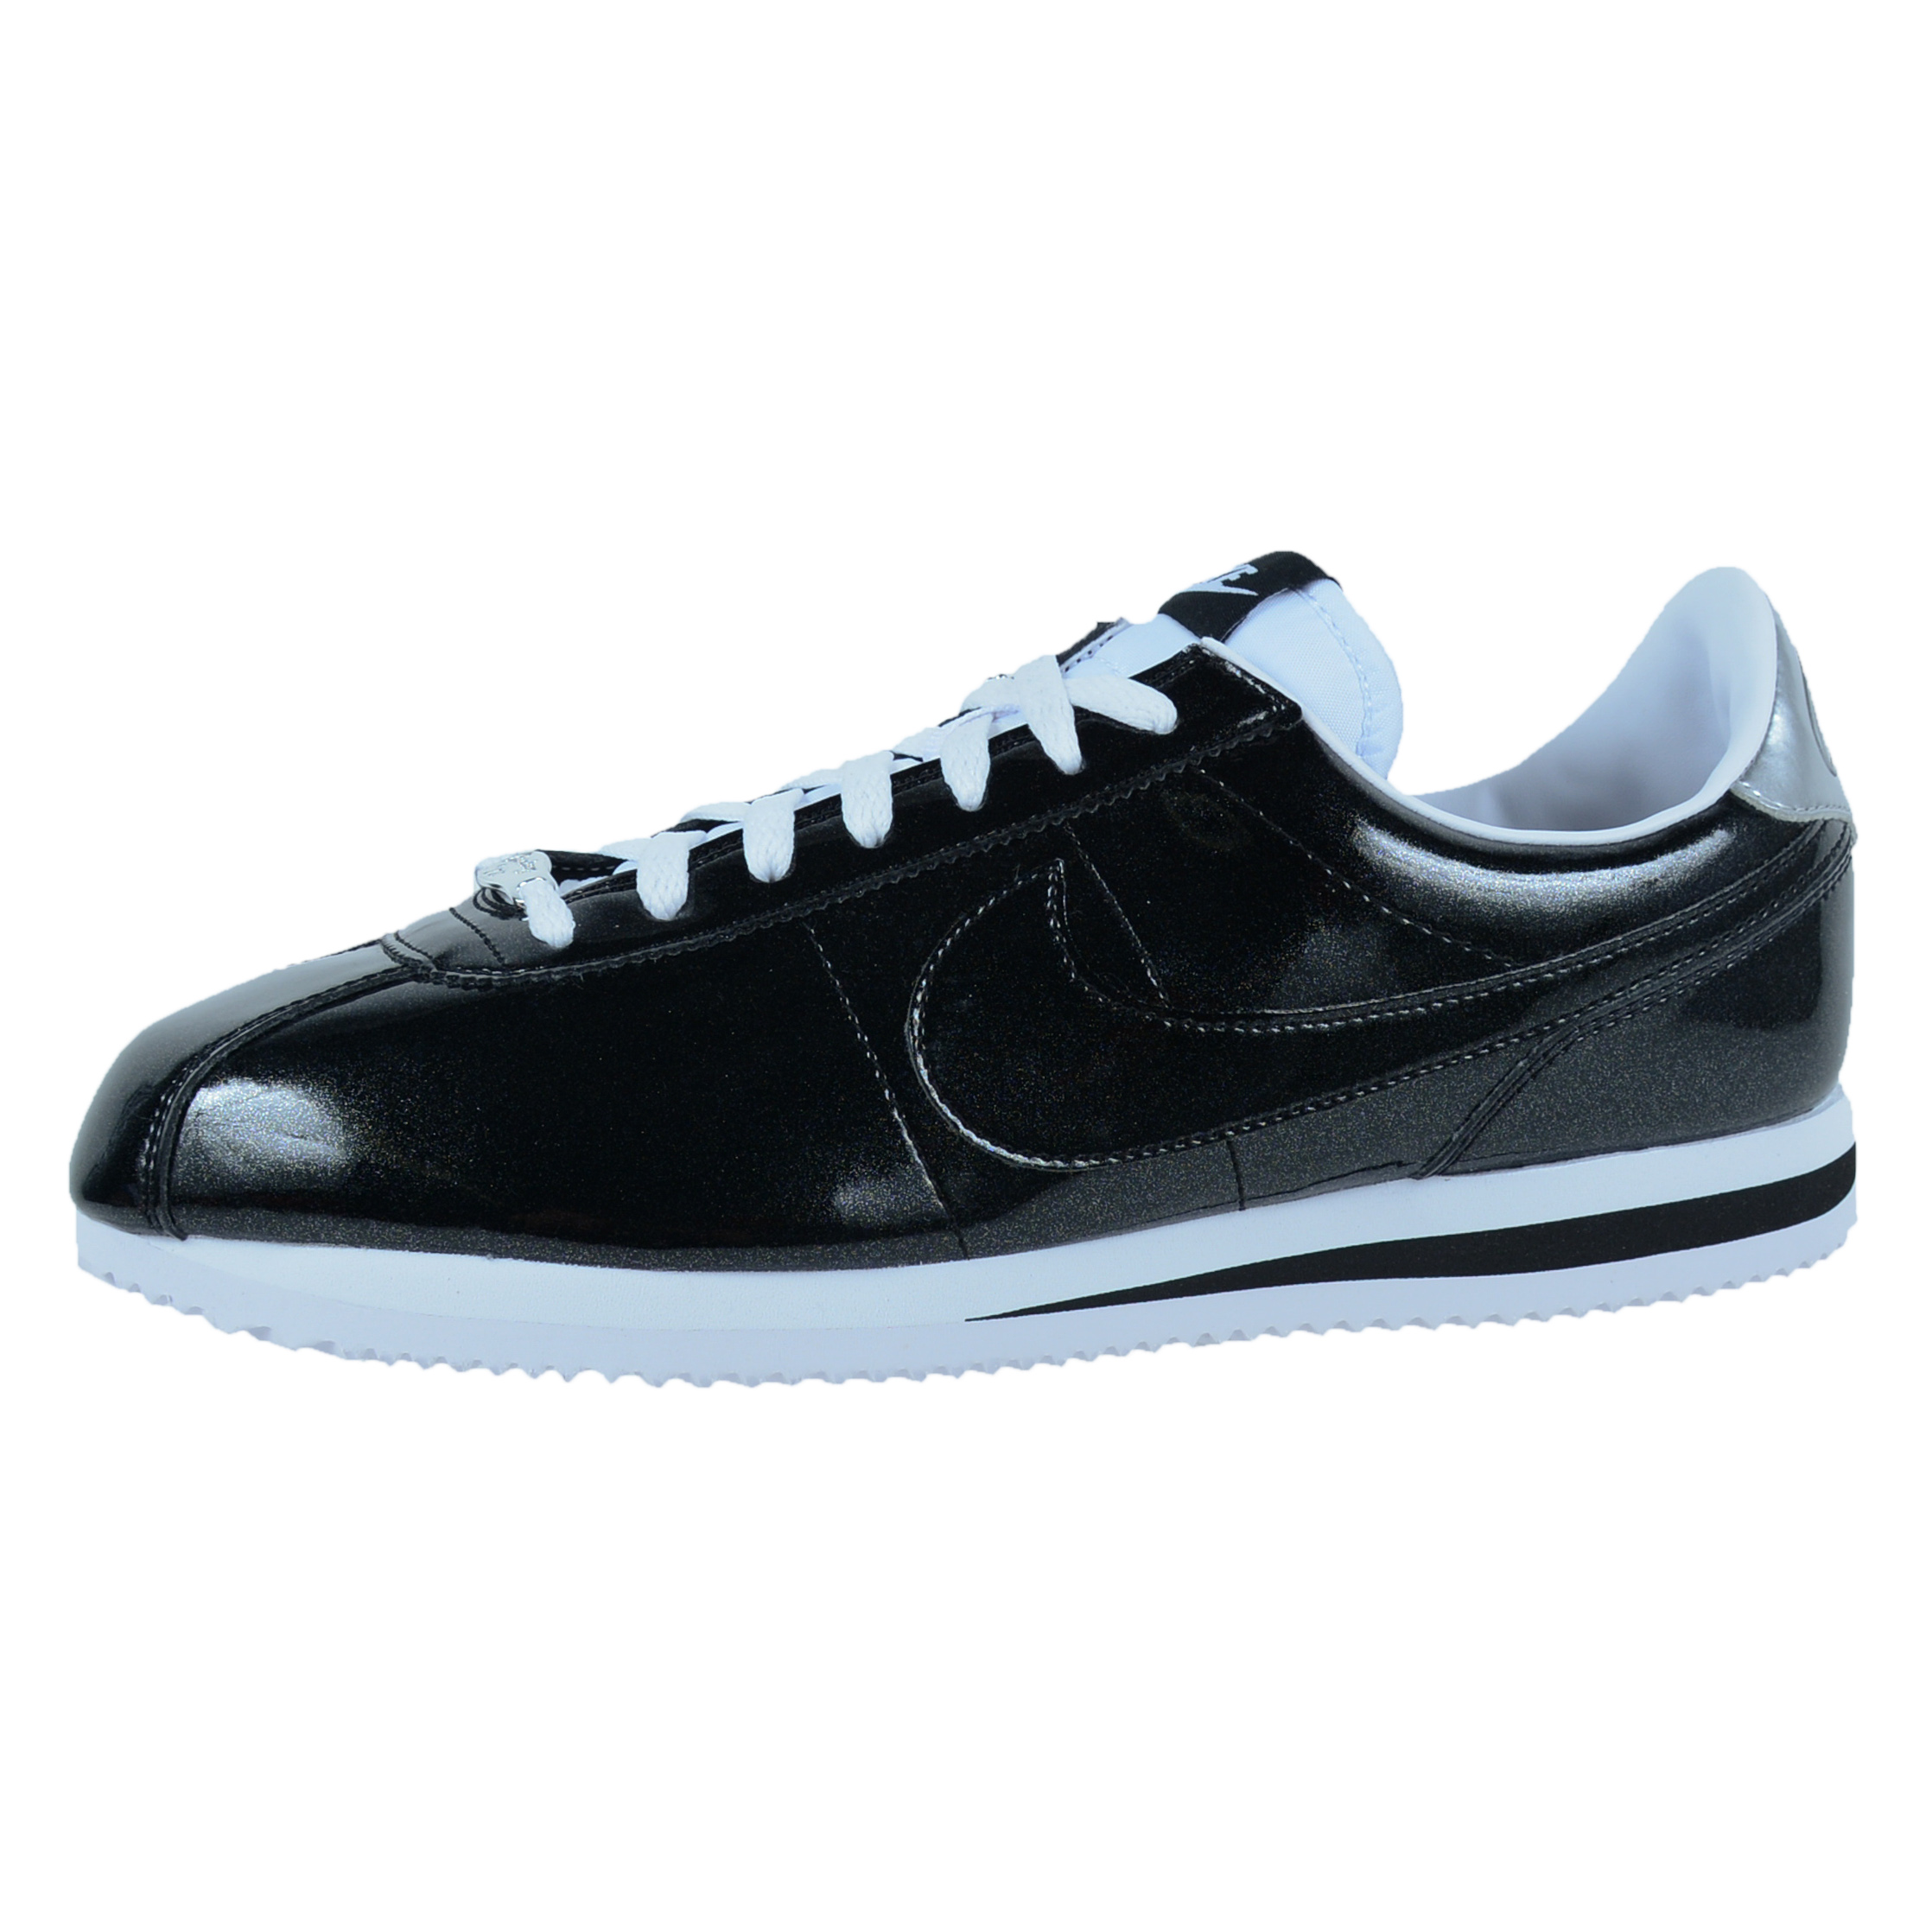 nike cortez qs red; NIKE CORTEZ BASIC PREMIUM QS CASUAL SHOES BLACK WHITE  METALLIC SILVER 819721 001